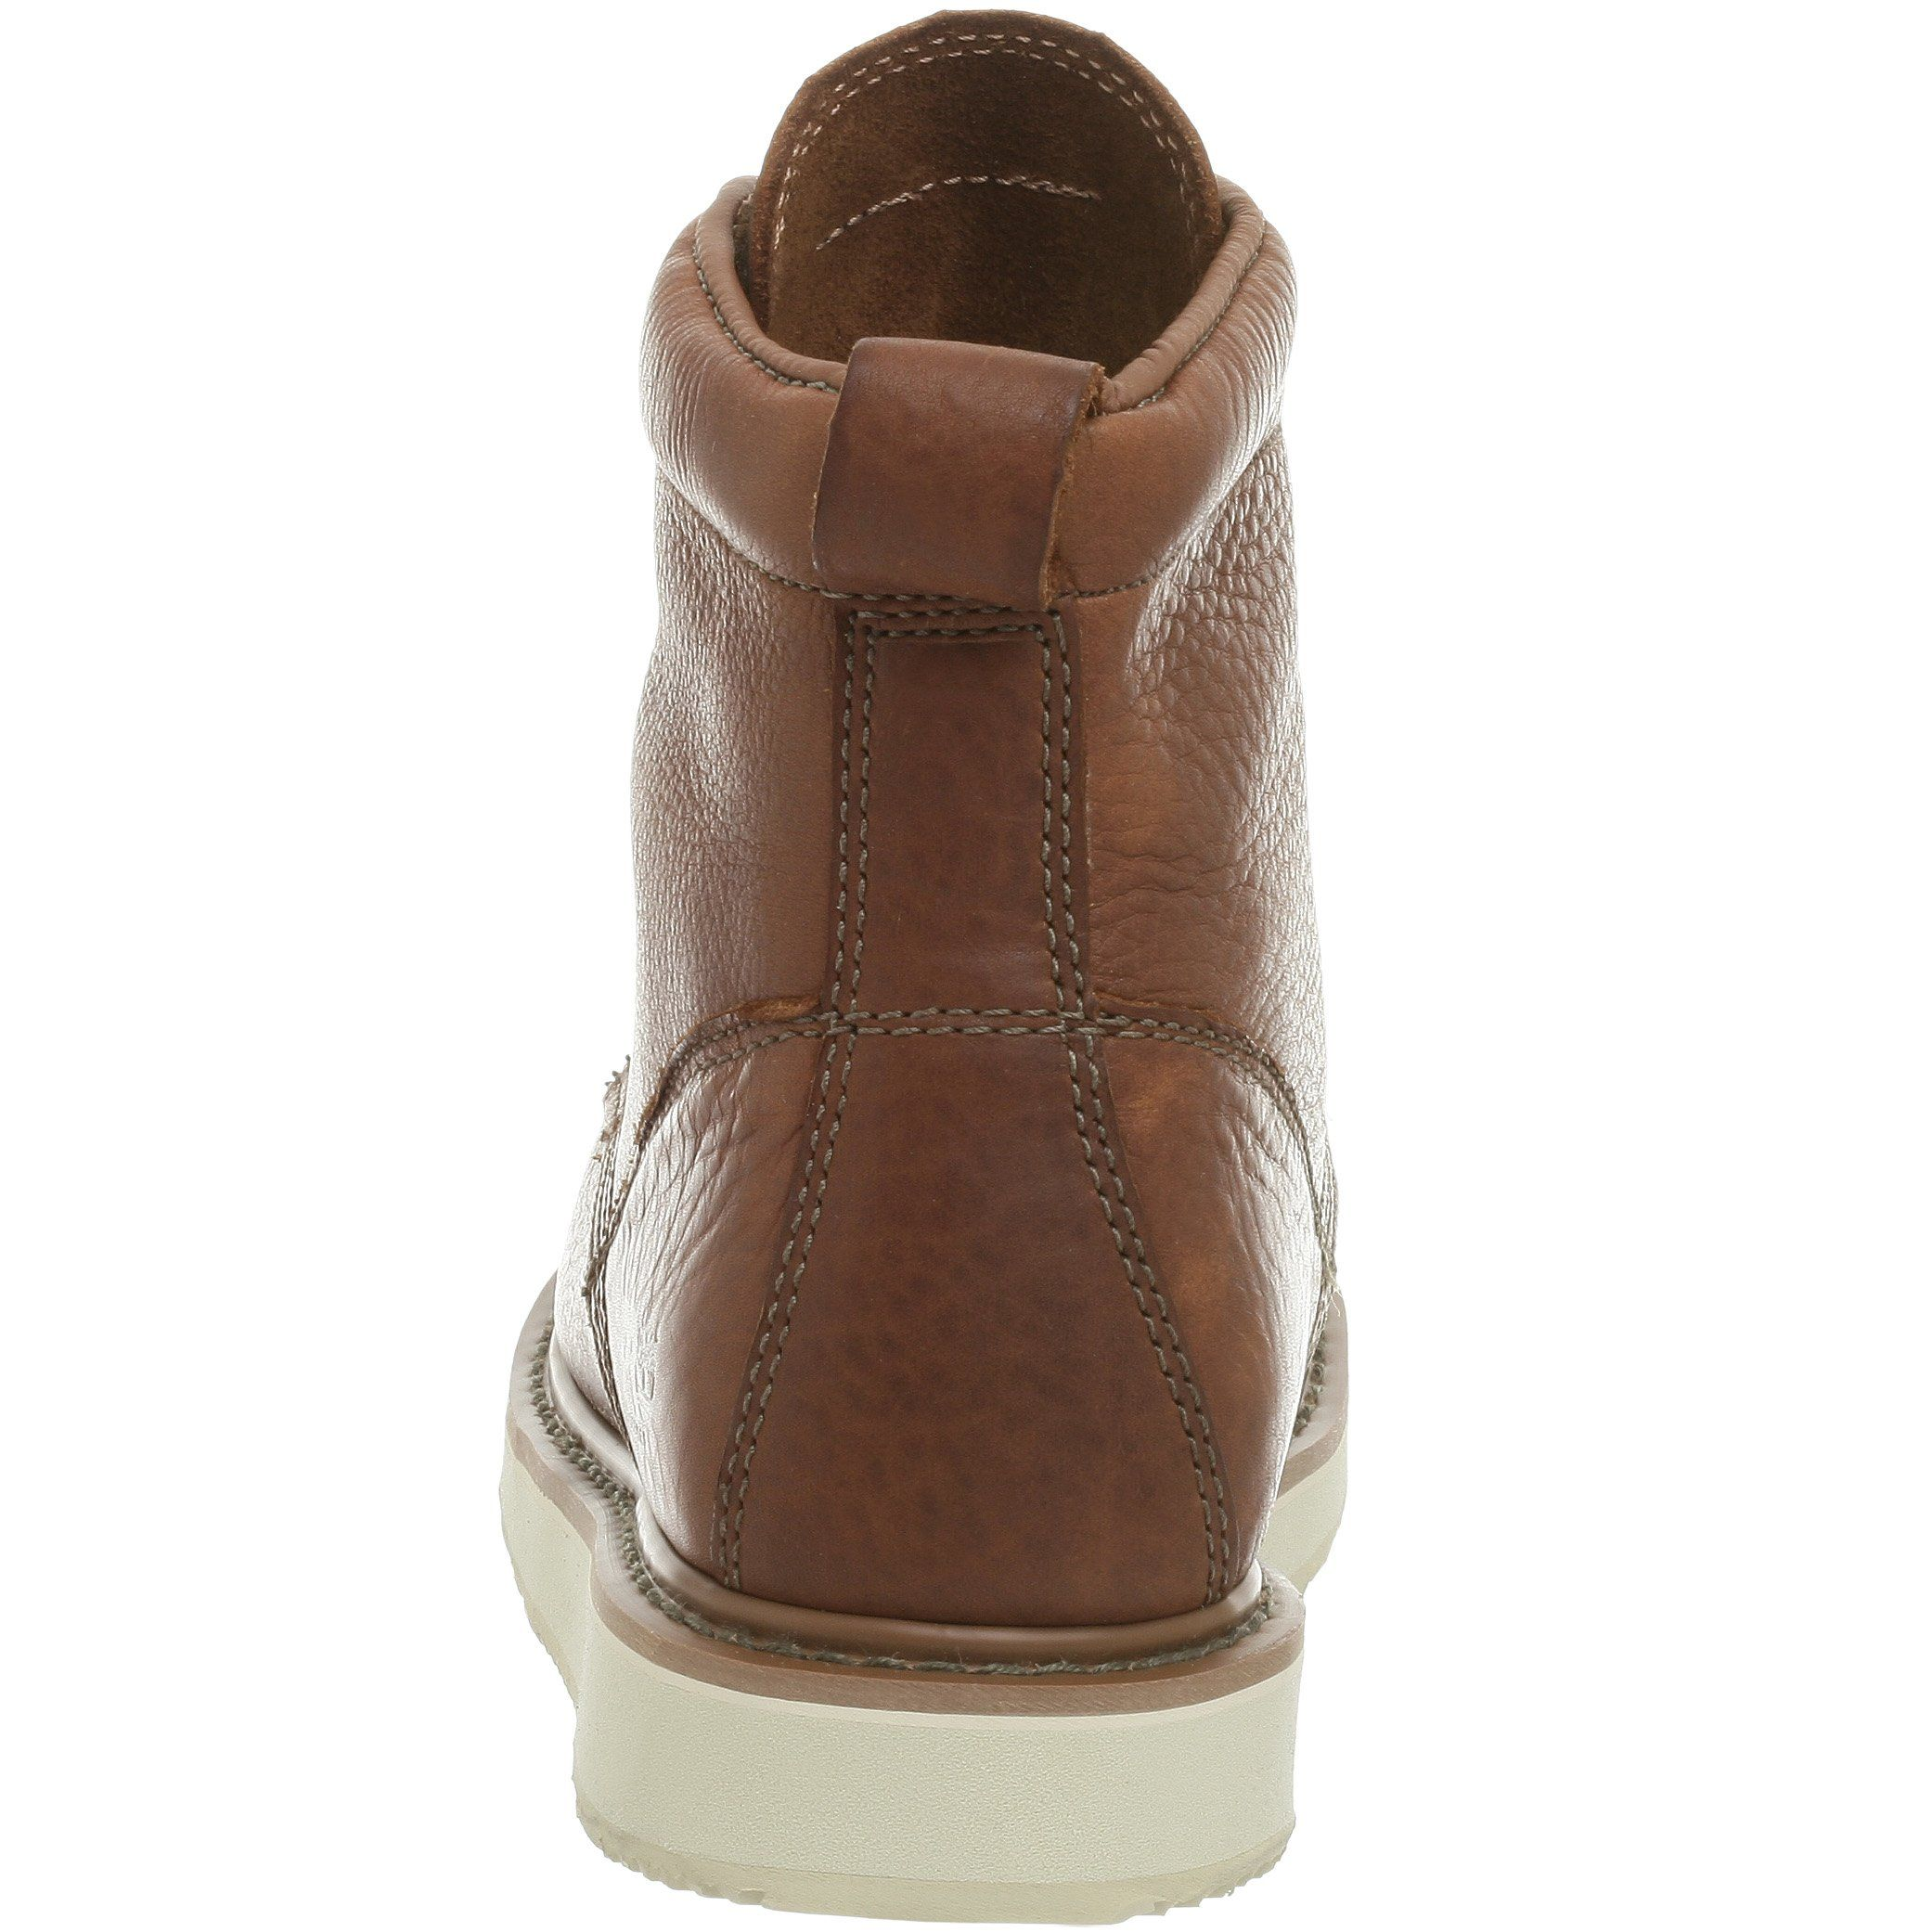 Timberland PRO Wedge Sole